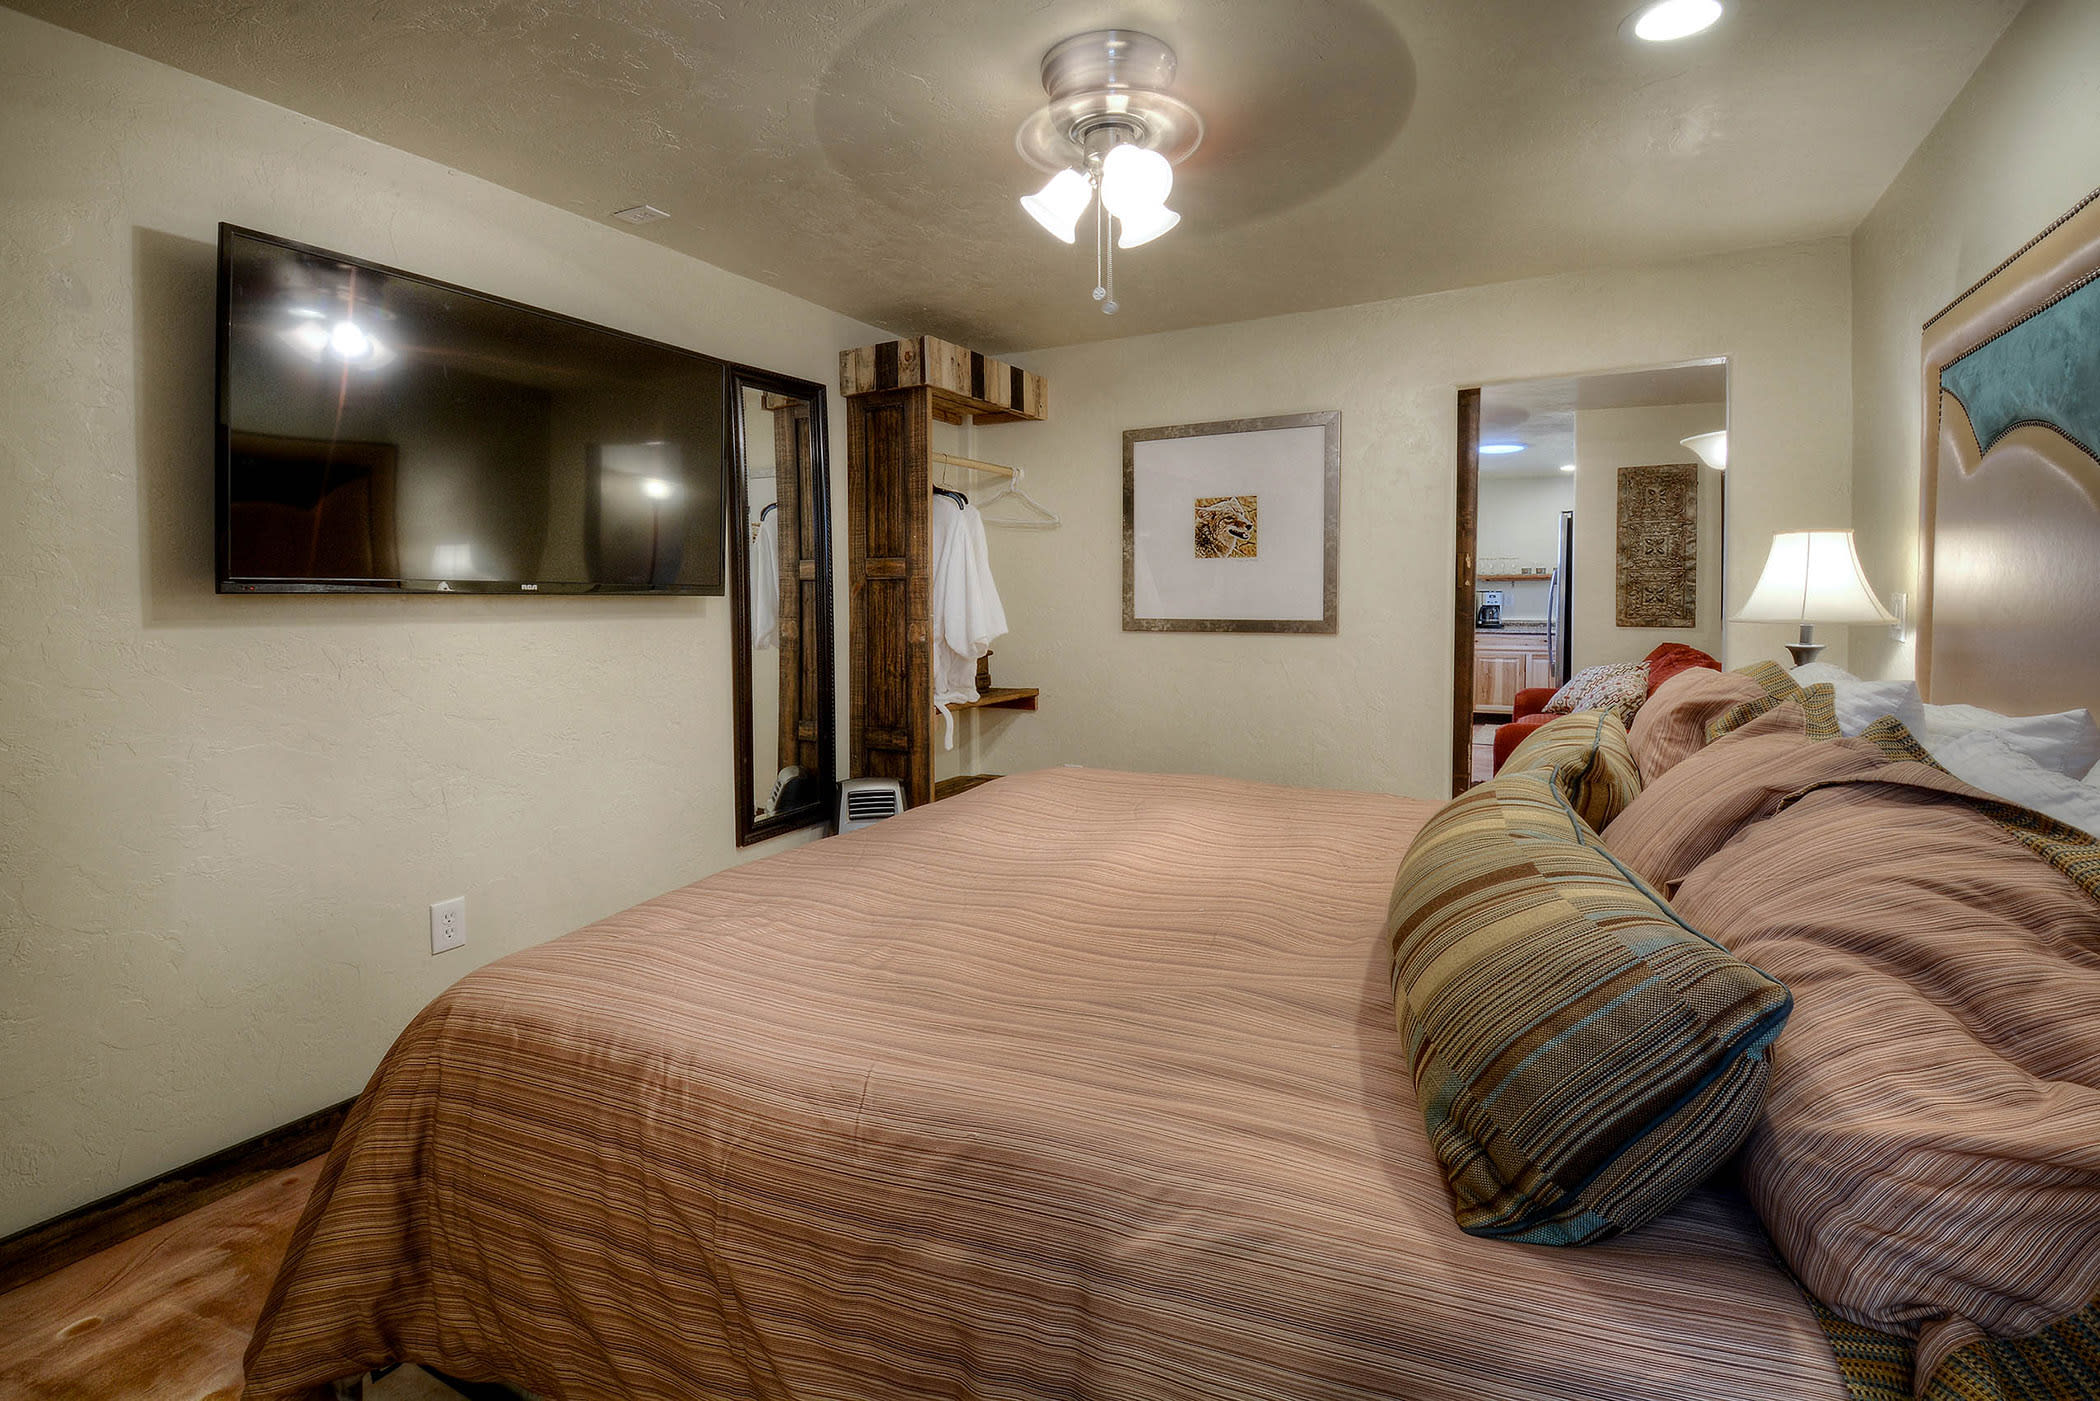 The bedroom offers a plush king bed.